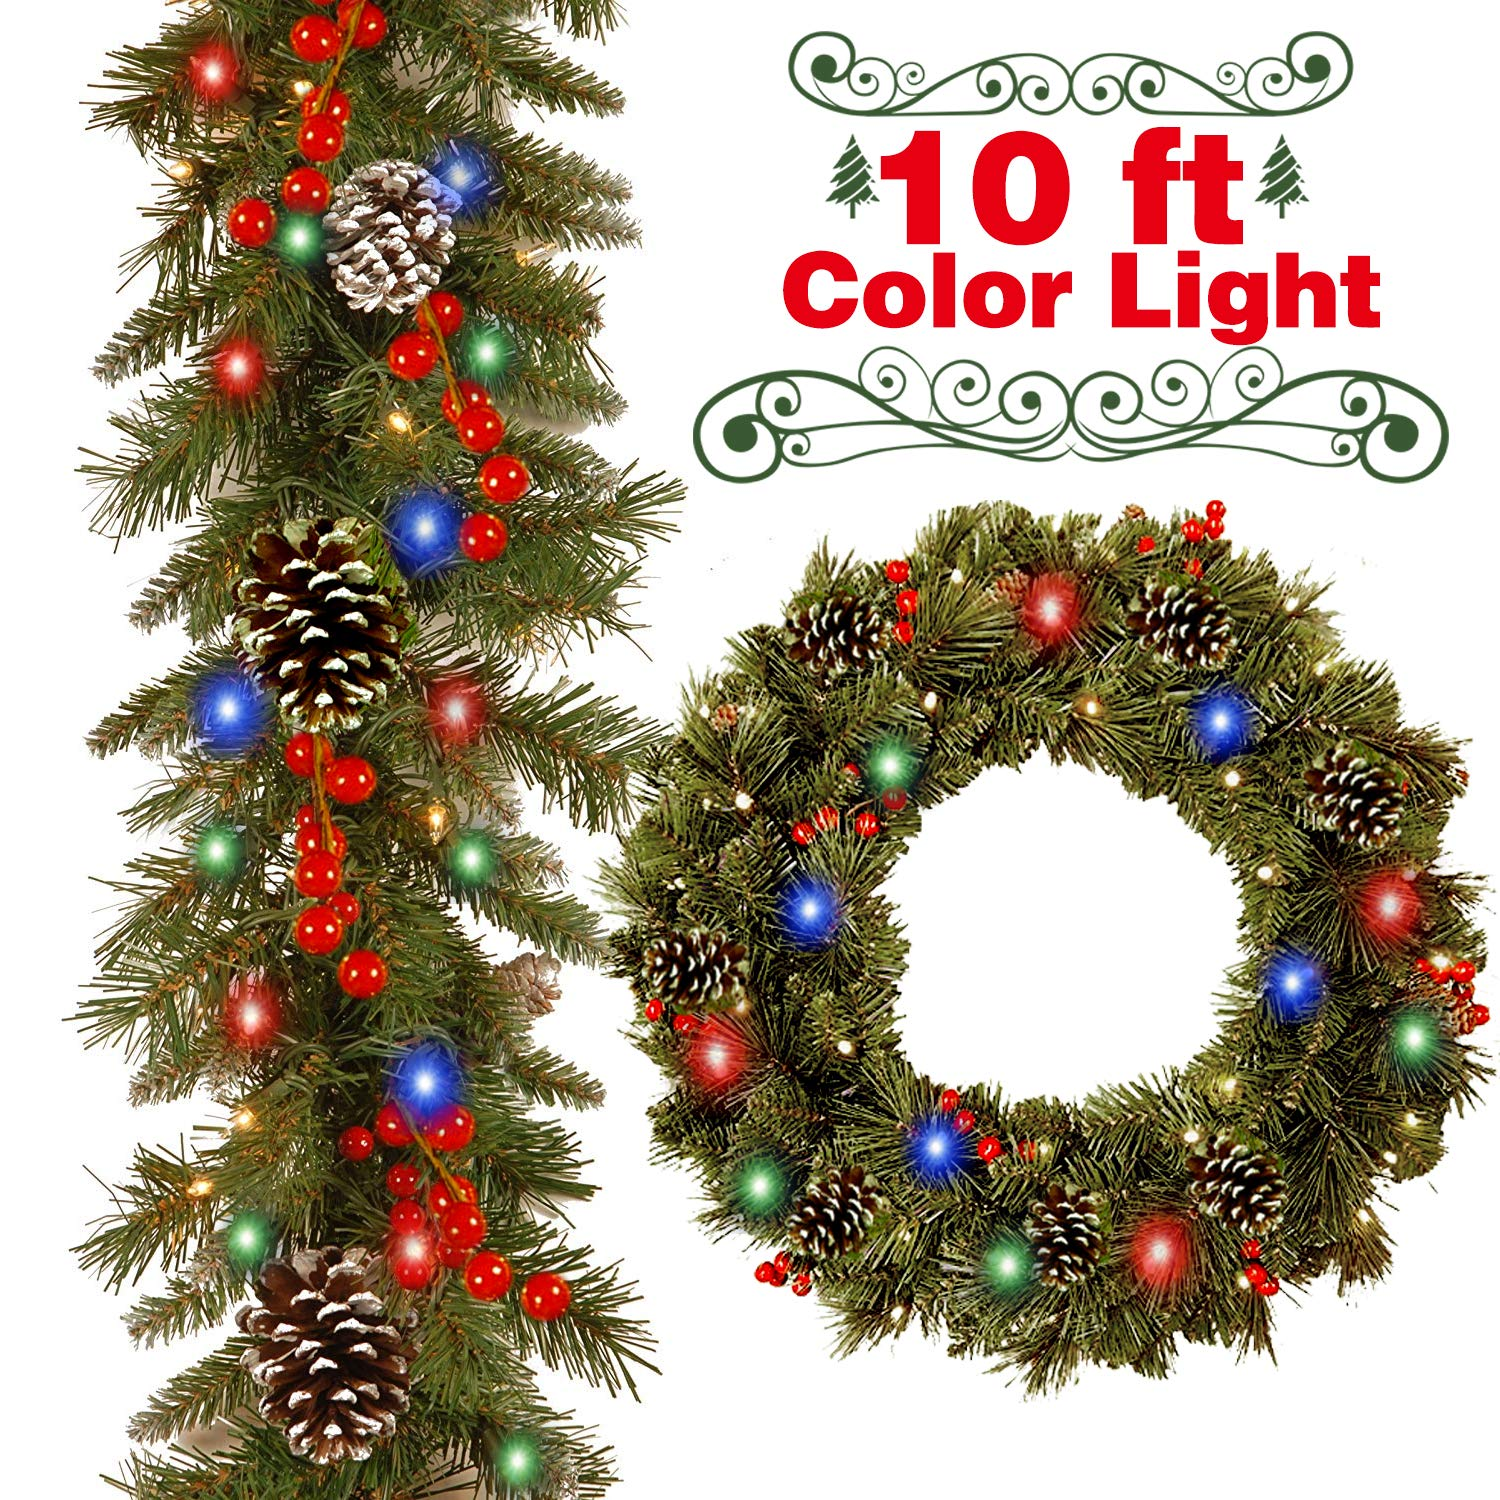 Christmas Garland Decorations with 50 LED Lights,10 Ft Christmas String  Lights Multicolor for Christmas Tree with 18 Pine Cone 20 Berries,Xmas LED  Garland ...